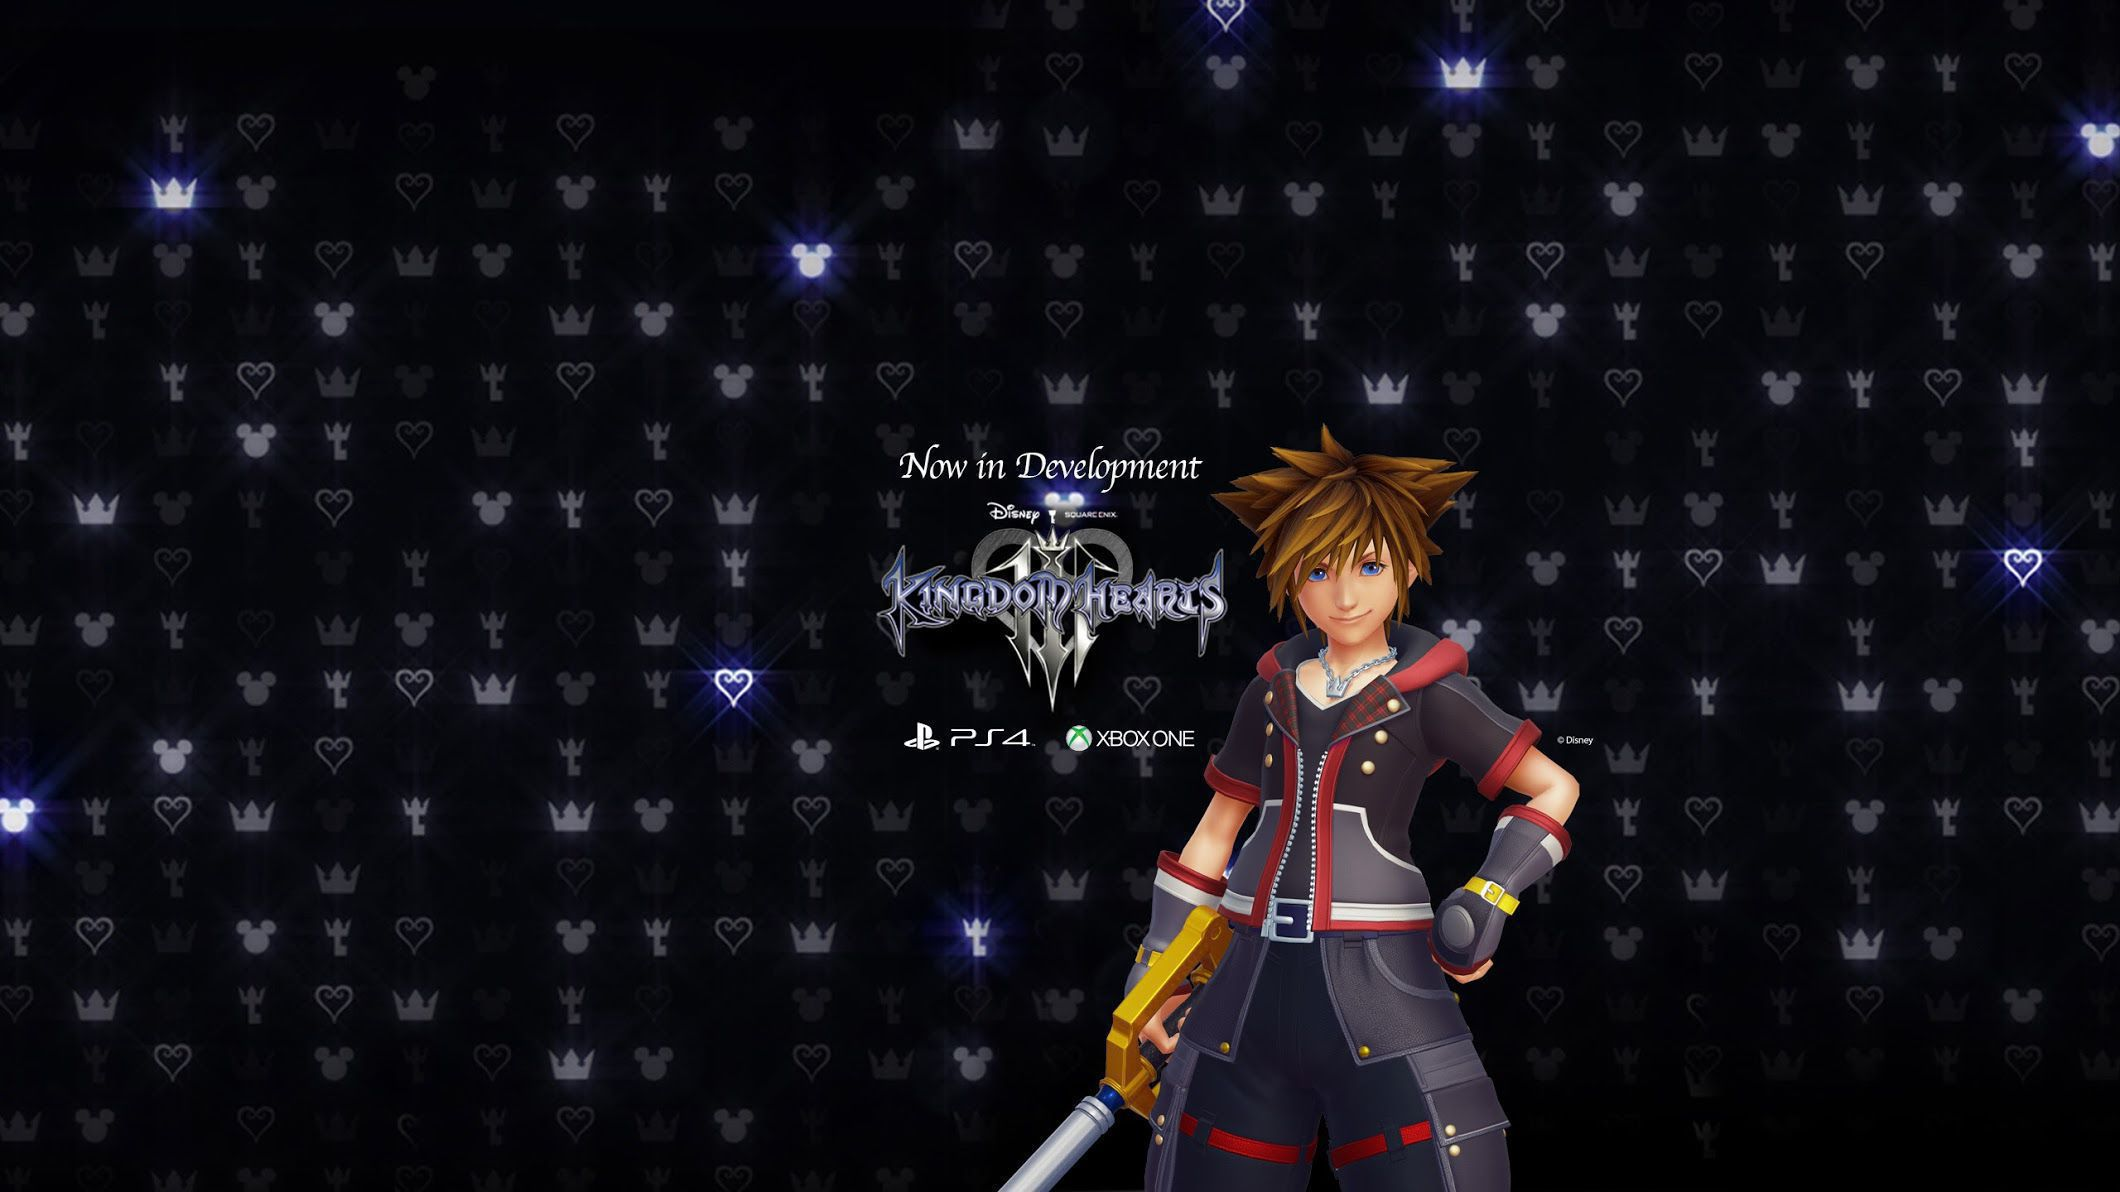 Kingdom Hearts 3 Background